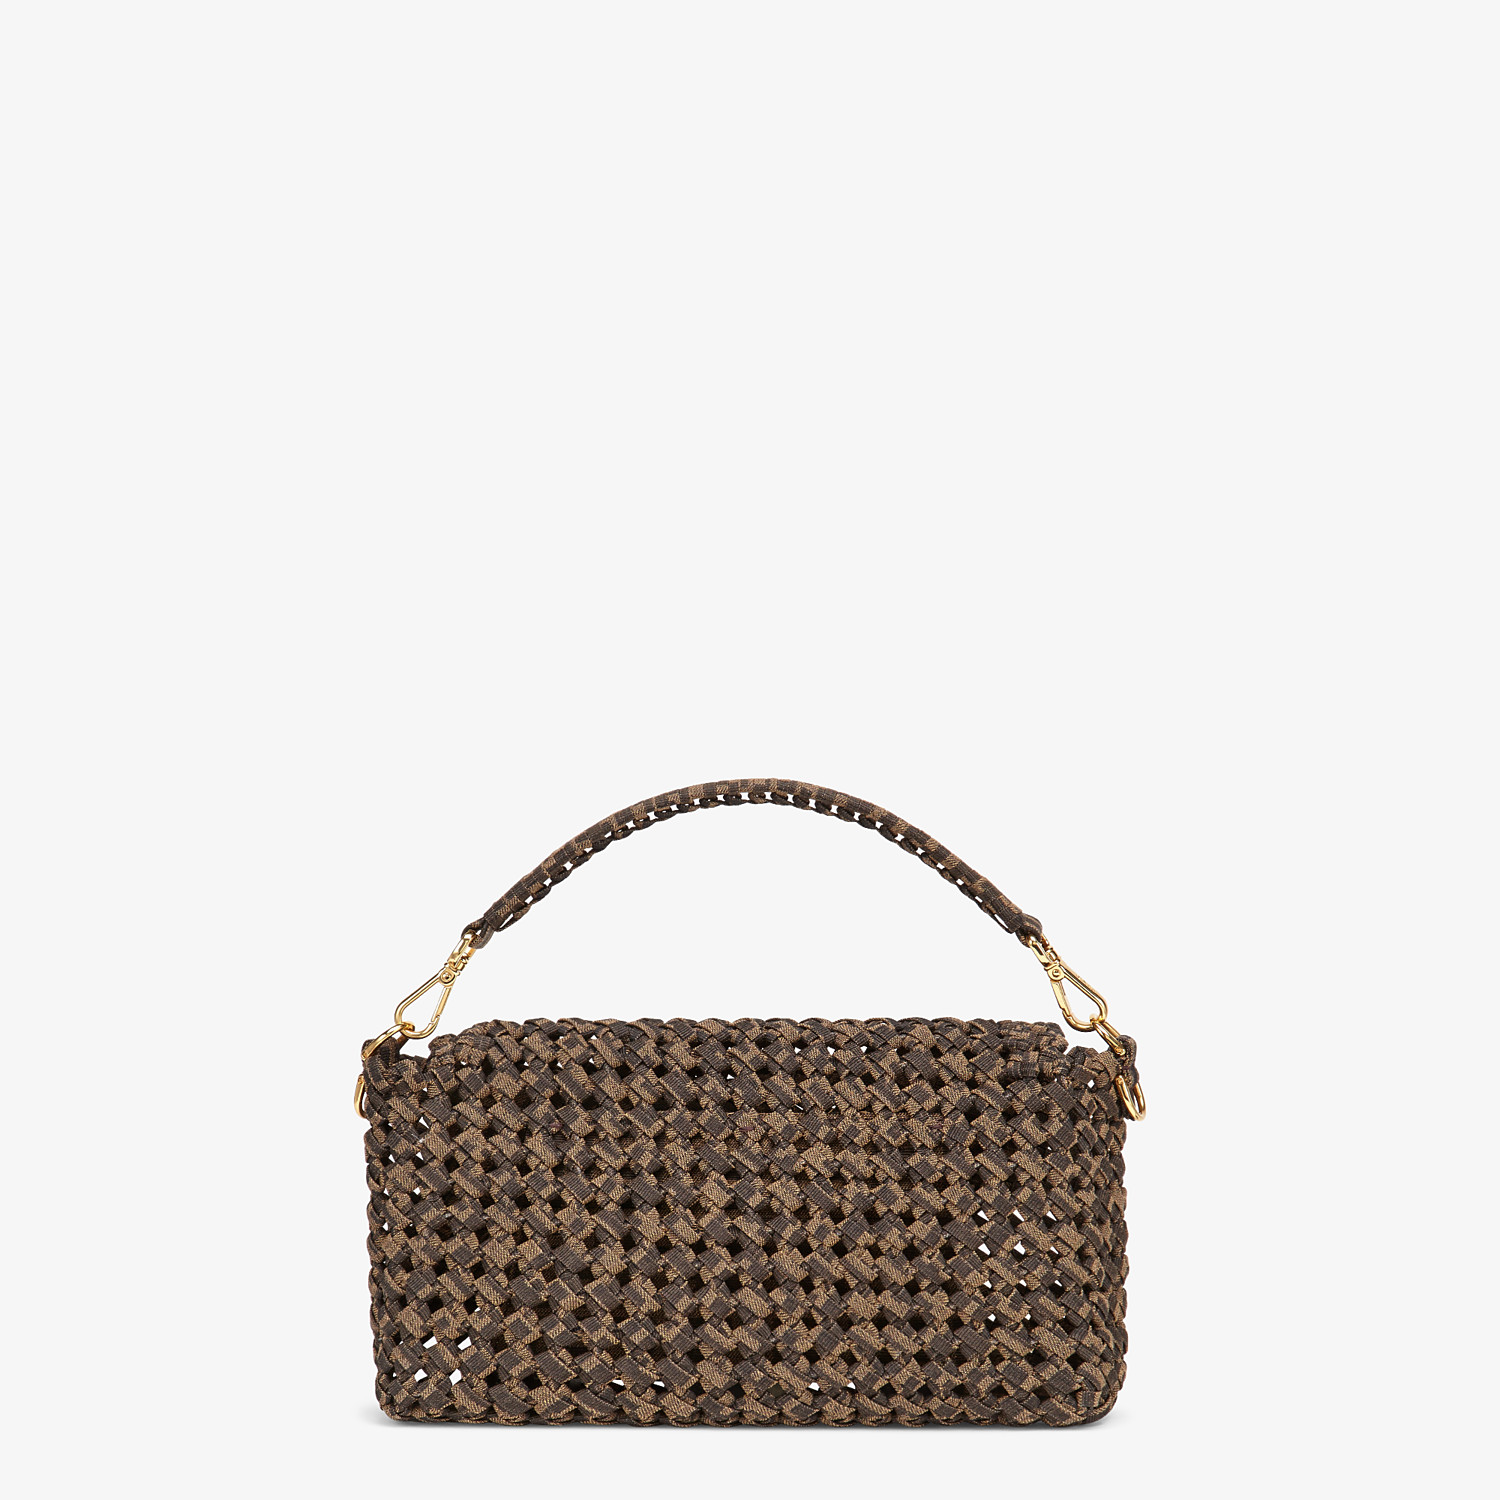 FENDI BAGUETTE - Jacquard fabric interlace bag - view 4 detail